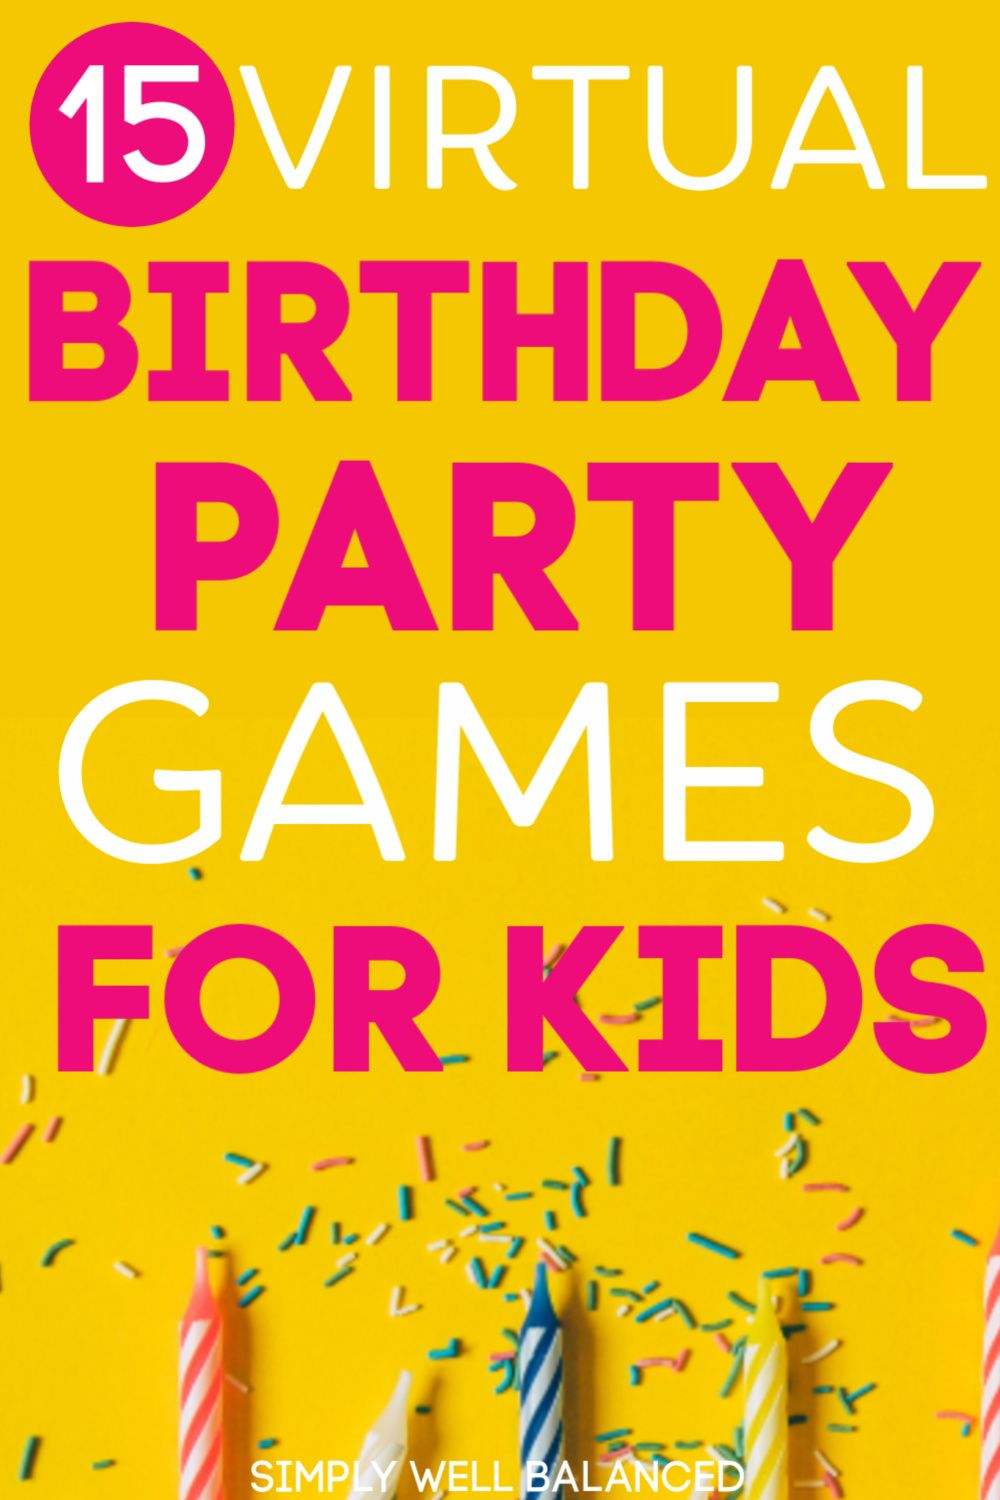 15 Fun Games for Kids to Play with Friends on Video Chat in 2020 | Birthday  party games for kids, Kids party games, Birthday games for kids